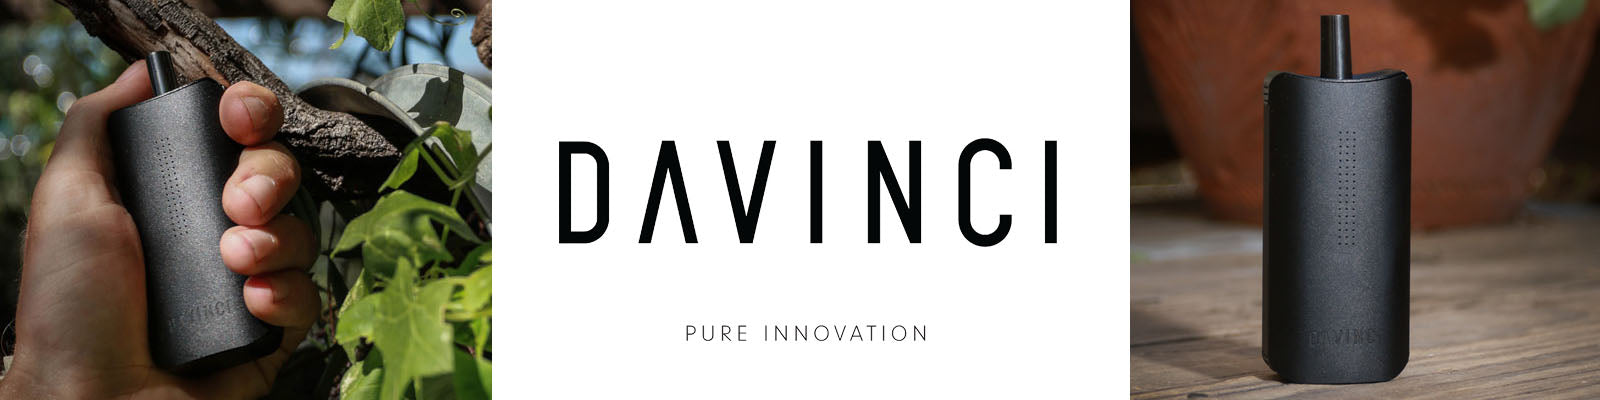 Davinci Vaporizers - Free Shipping & Best Price - Authorized Sellers - Canada